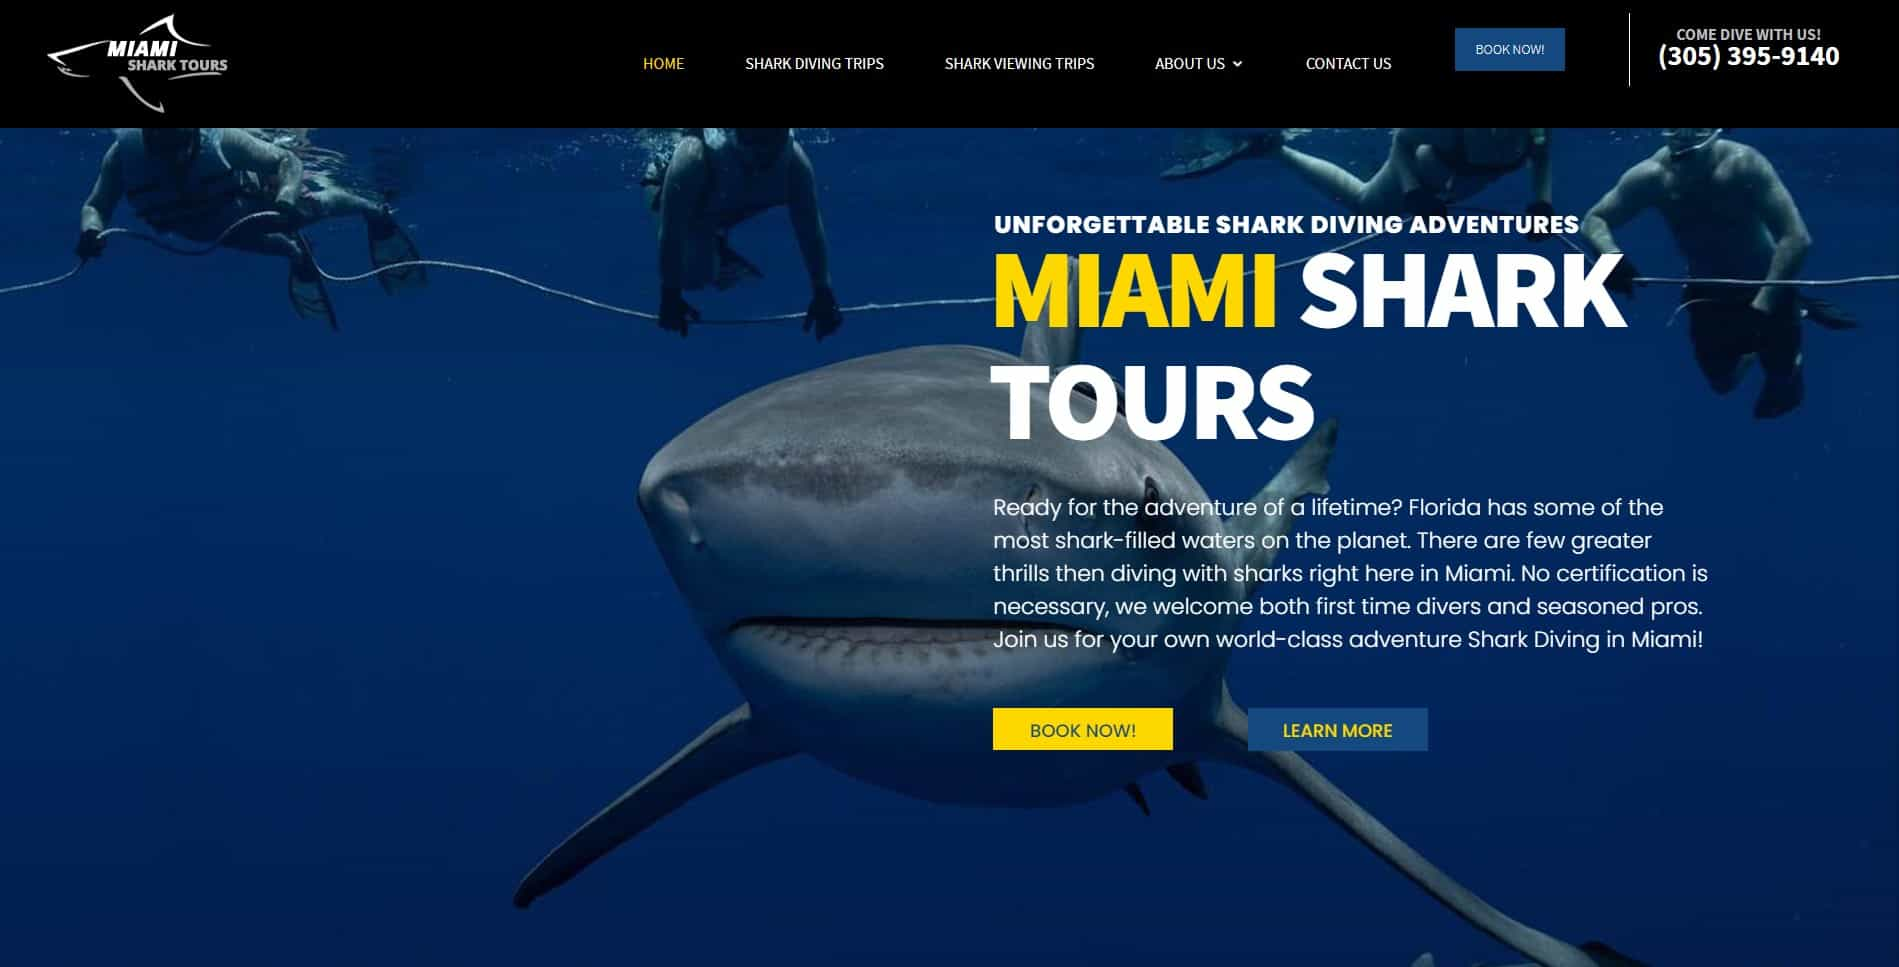 An image of the Miami Shark tours website built by Not Fade Away.